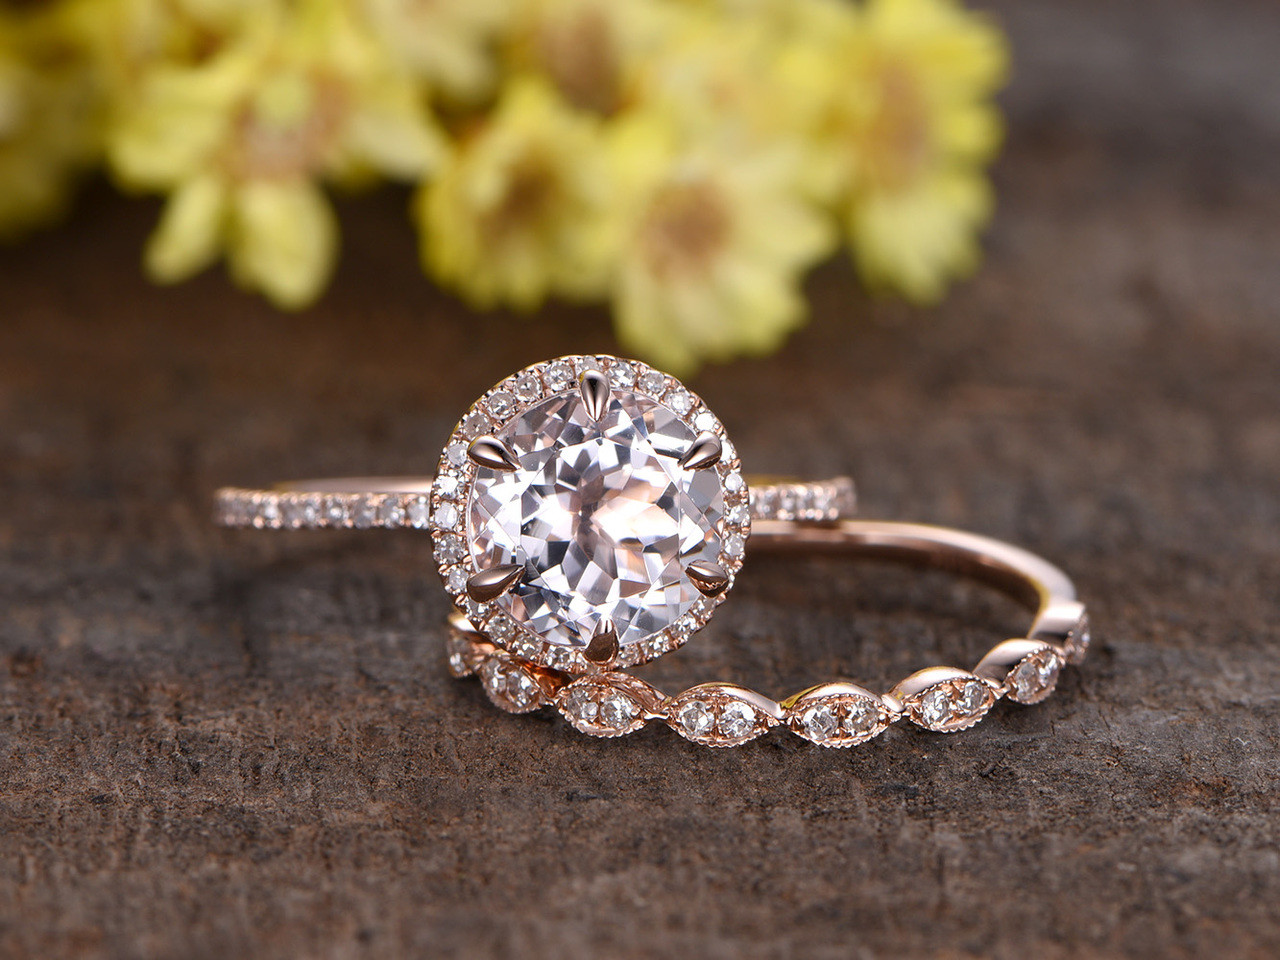 18 Carat Morganite Rose Gold Wedding Set Diamond Engagement Ring